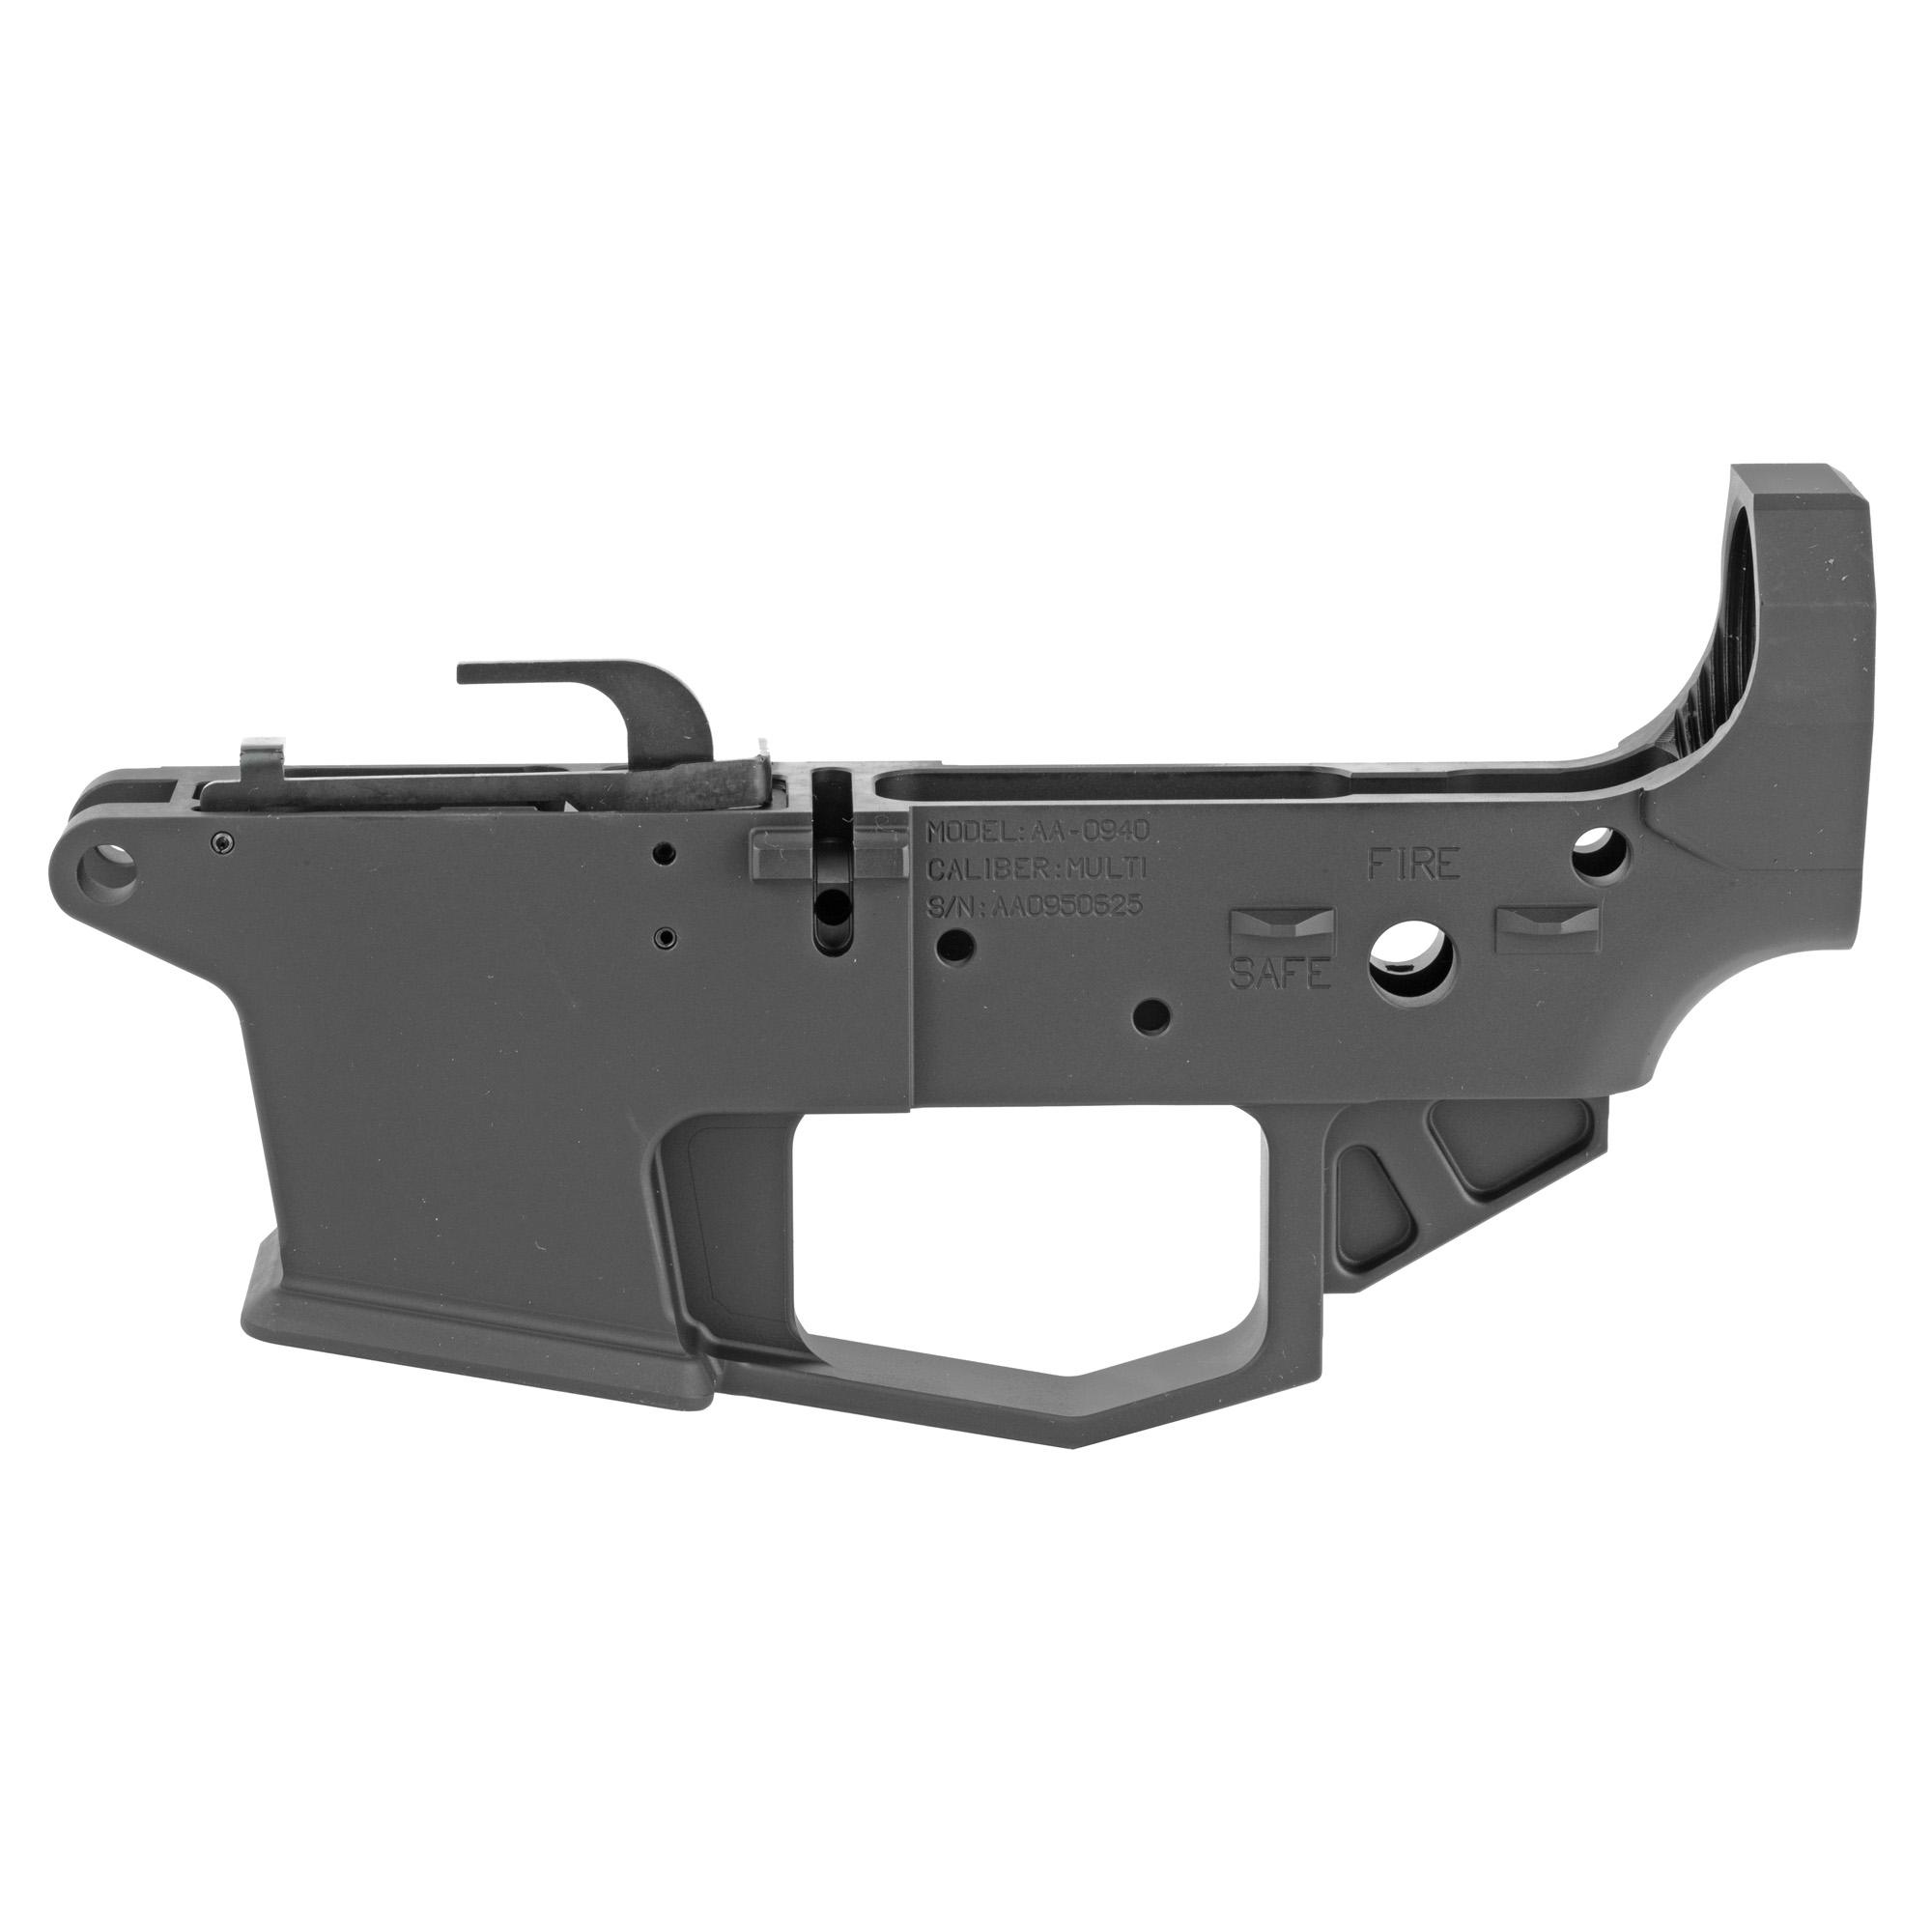 Angstadt Arms Angstadt Arms 0940 Glock 9mm / 40sw Lower